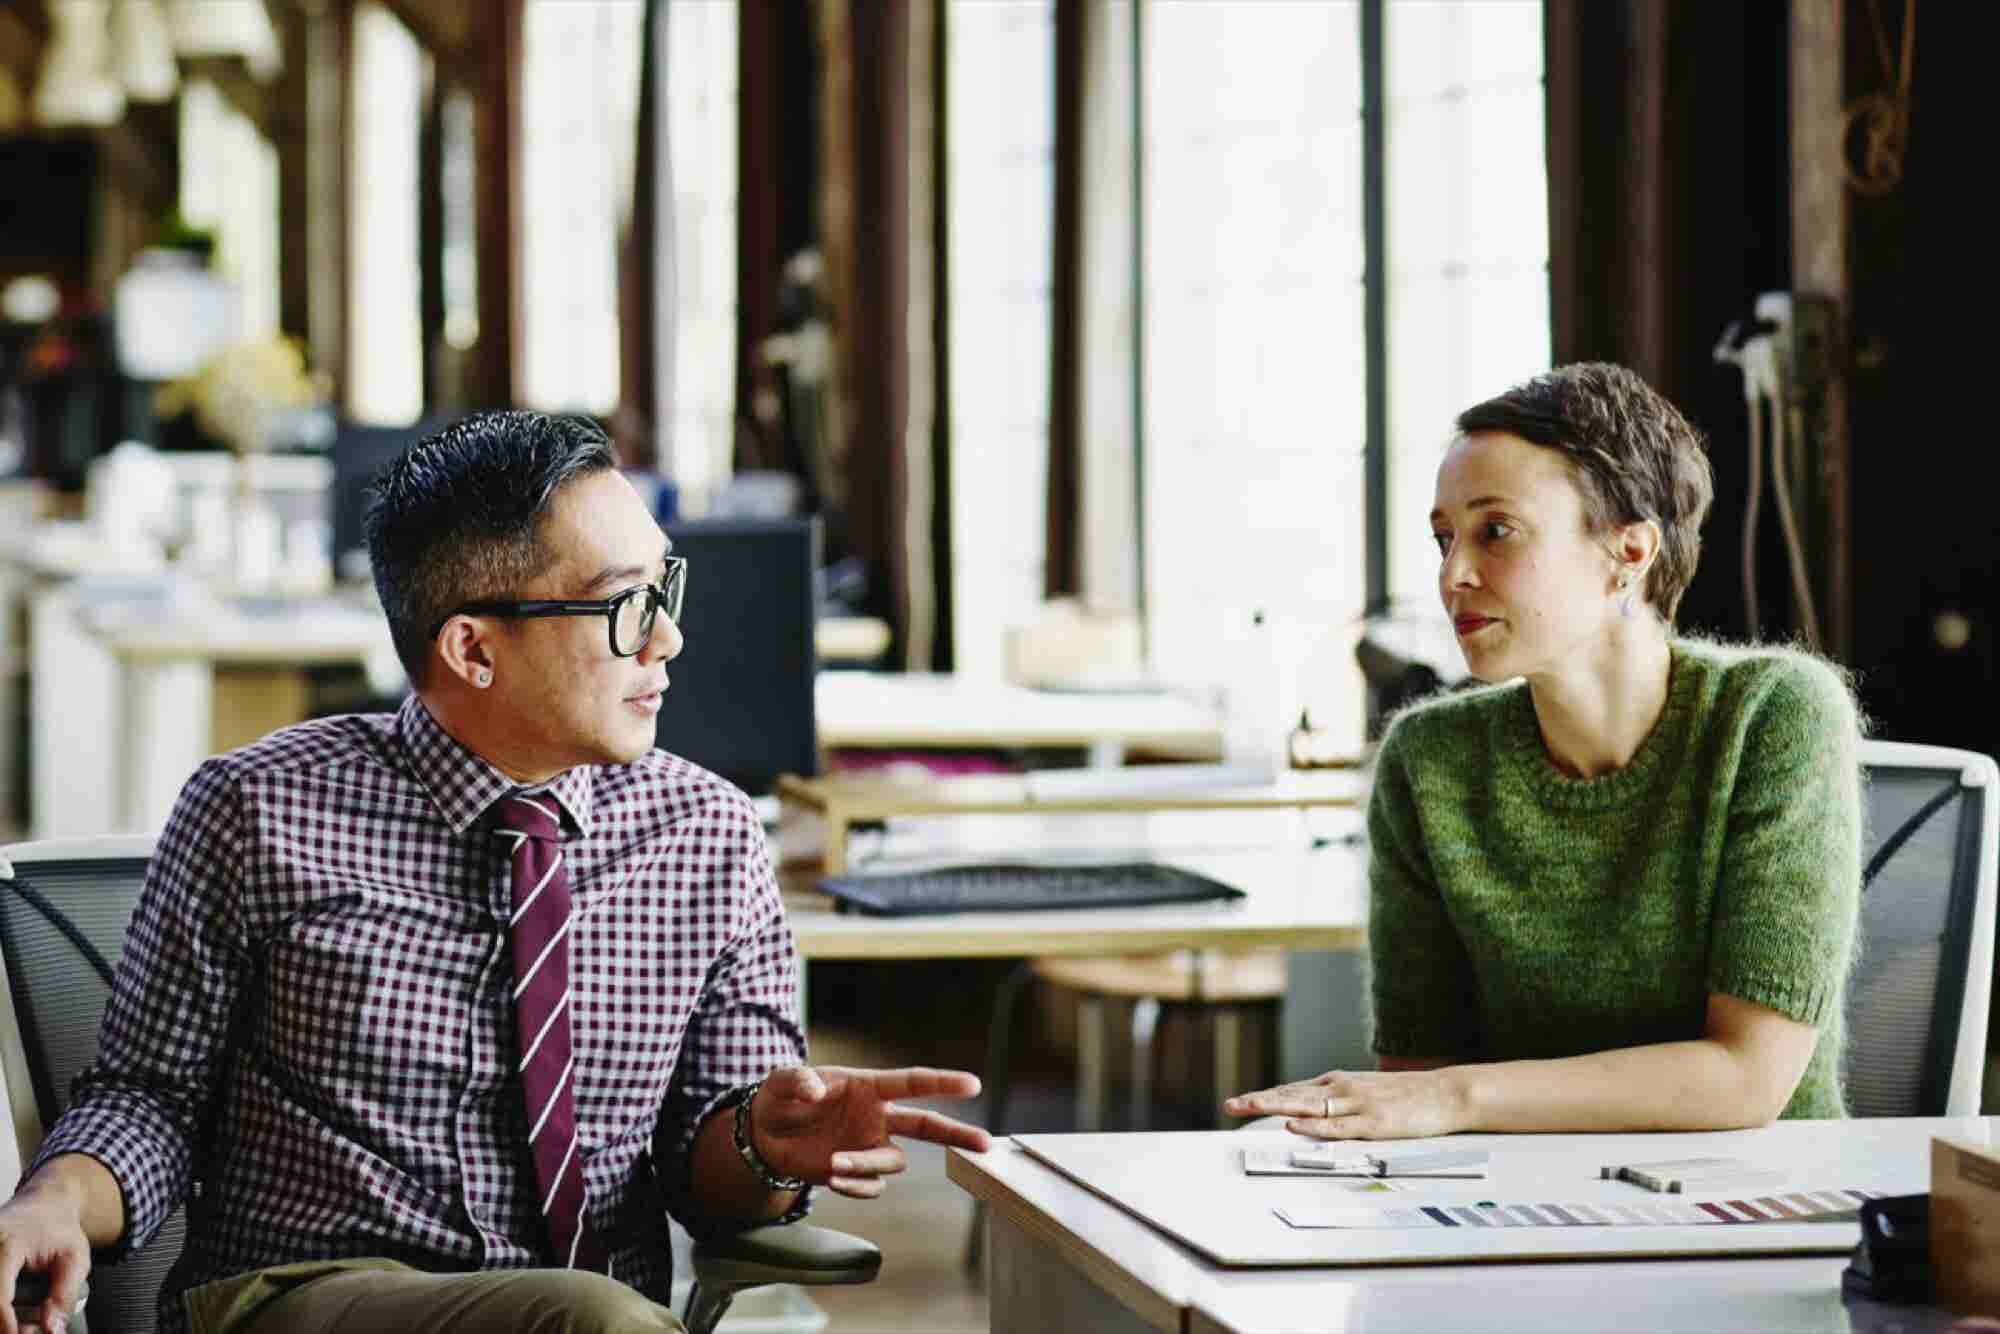 Want to Make Your Workplace More Human? Here Are 4 Foolproof Ways.